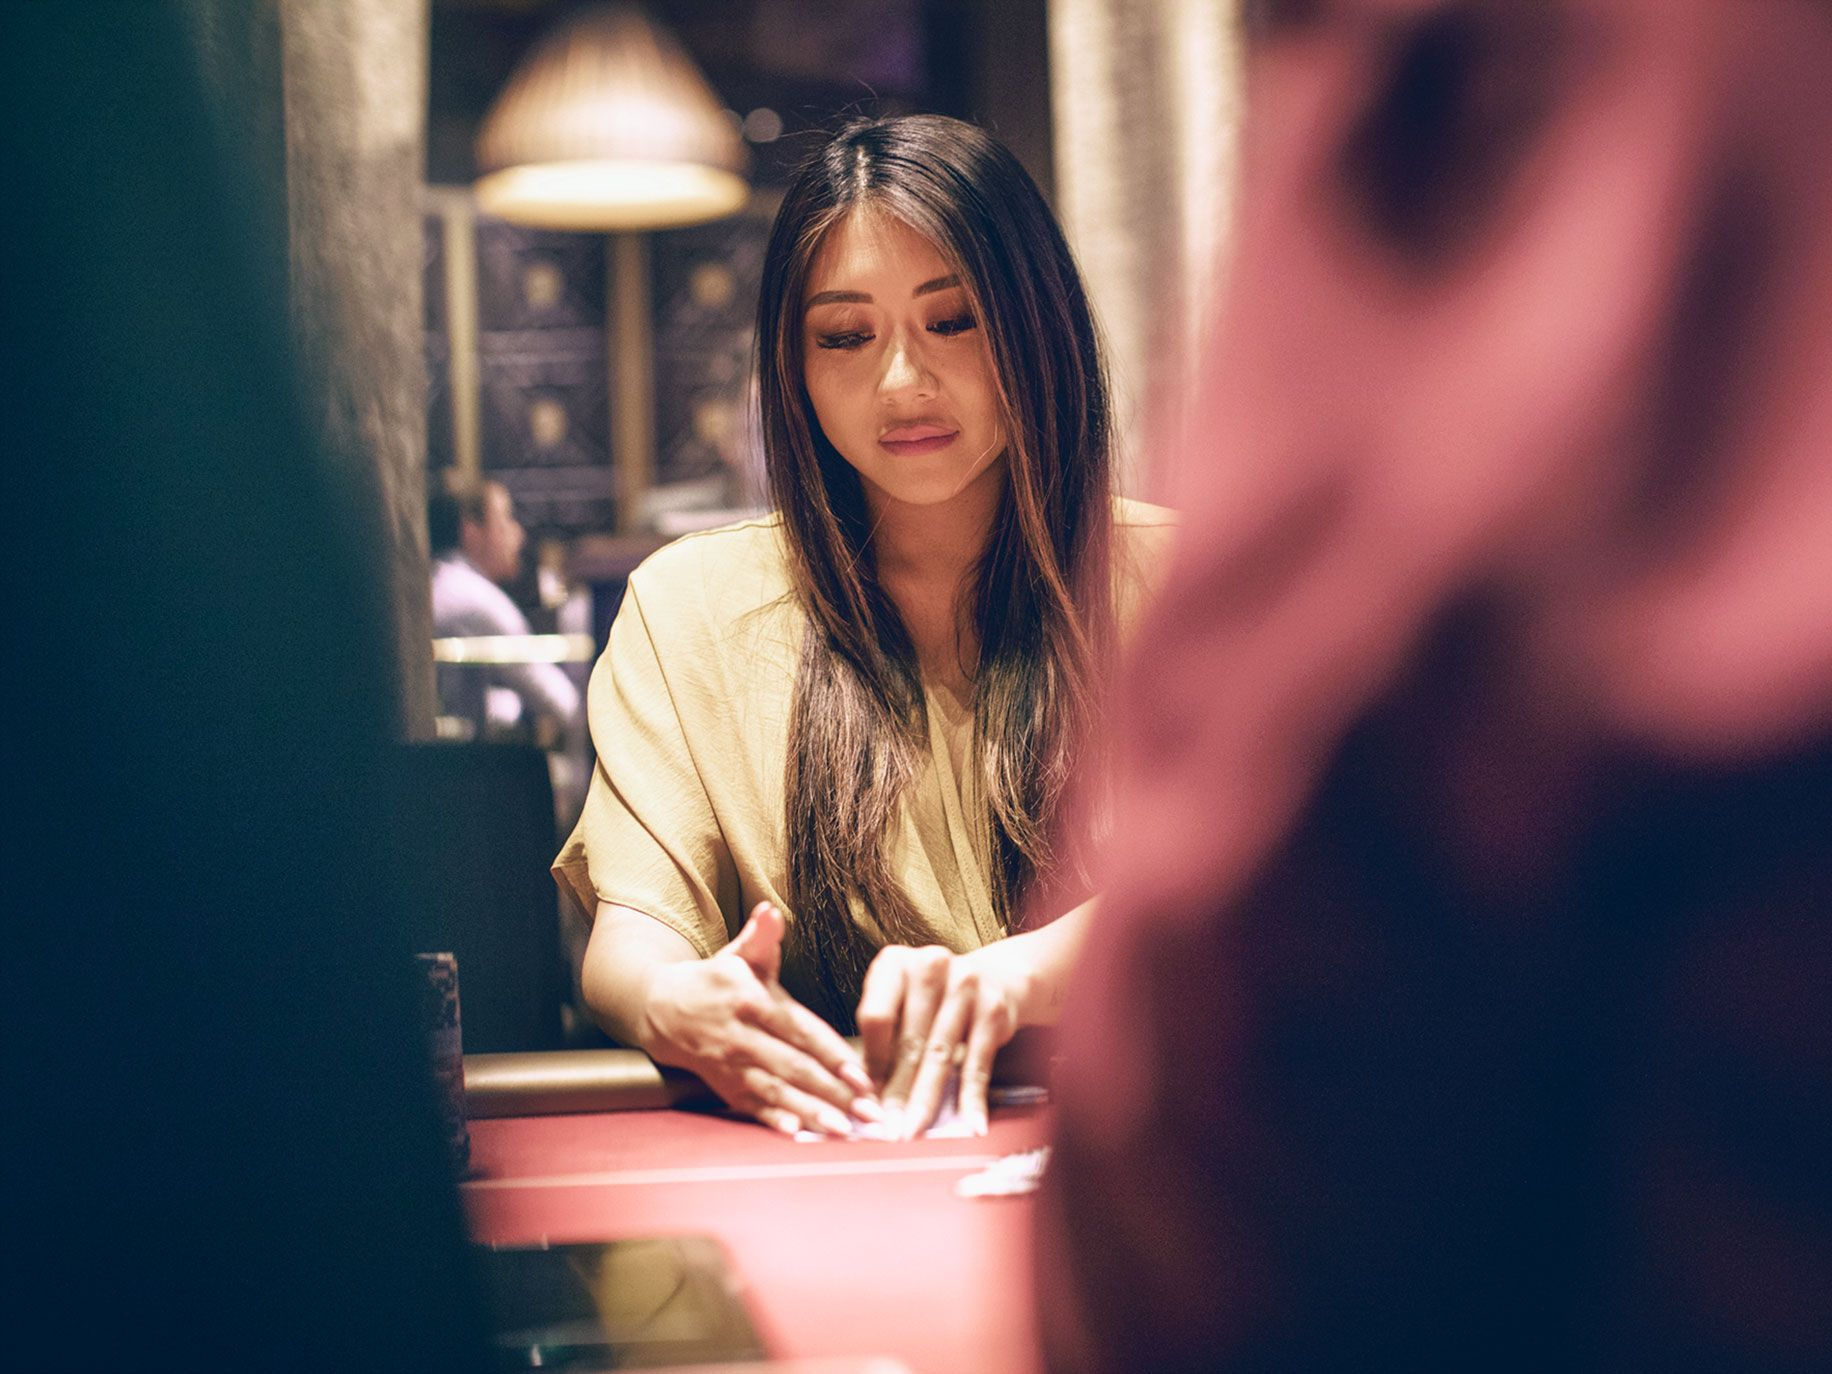 Maria Ho playing a hand during the six-week-long World Series of Poker in Las Vegas this year. The L.A. resident competed in 30 of the series' nearly 90 events and made frequent appearances as a poker analyst on ESPN during the tournament.